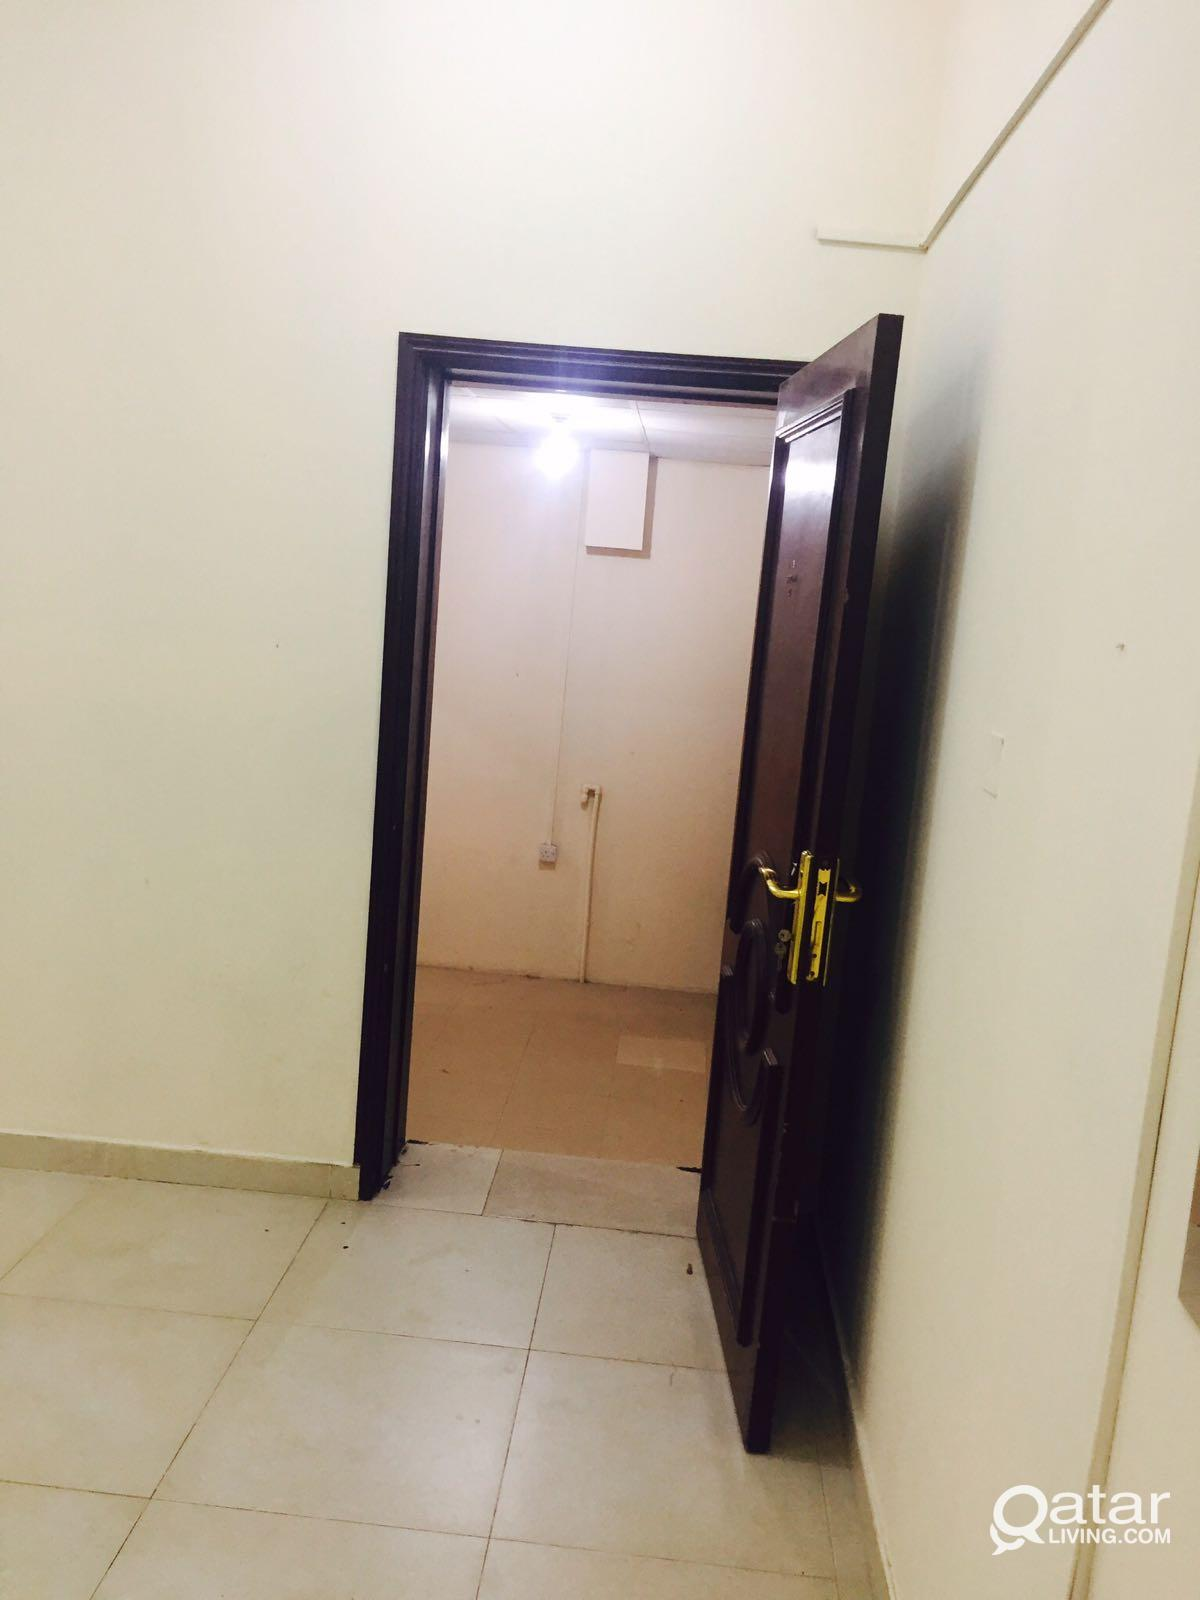 1bhk Family Room For Rent In Ain Khaled Qatar Living